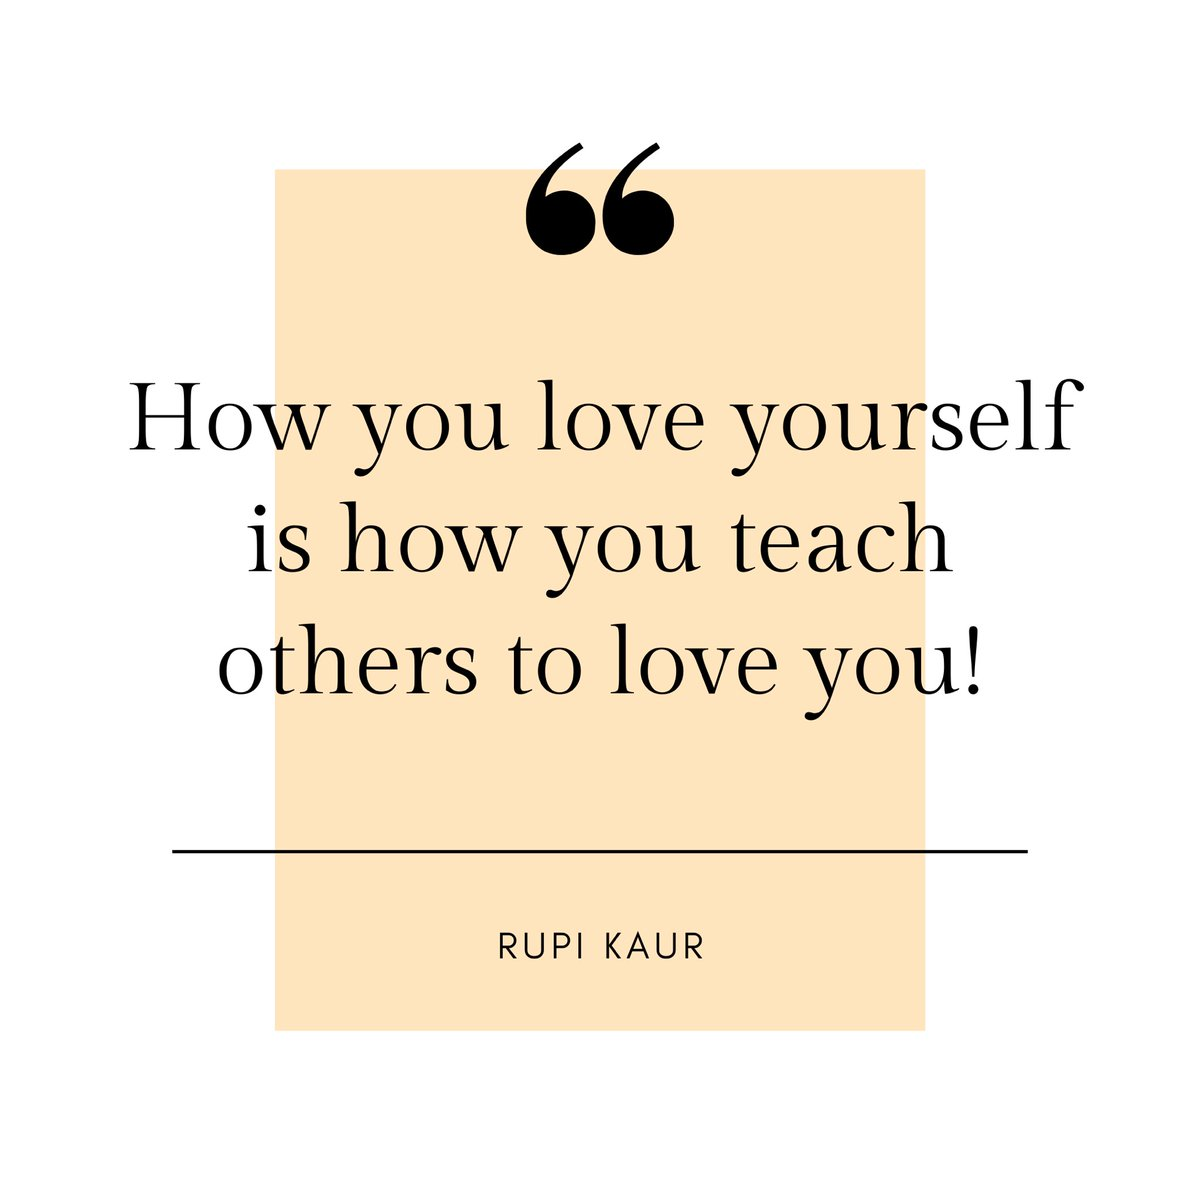 Just think about all the #challenging #dialogues that you recently had with someone in your life☹️ Maybe it's him/her who is seeking for #compassion and don't know how to ask for it😌 Treat all with #care and #love and you will receive more🙌  #selflove #respect #compassion https://t.co/vJPO3PHxkA